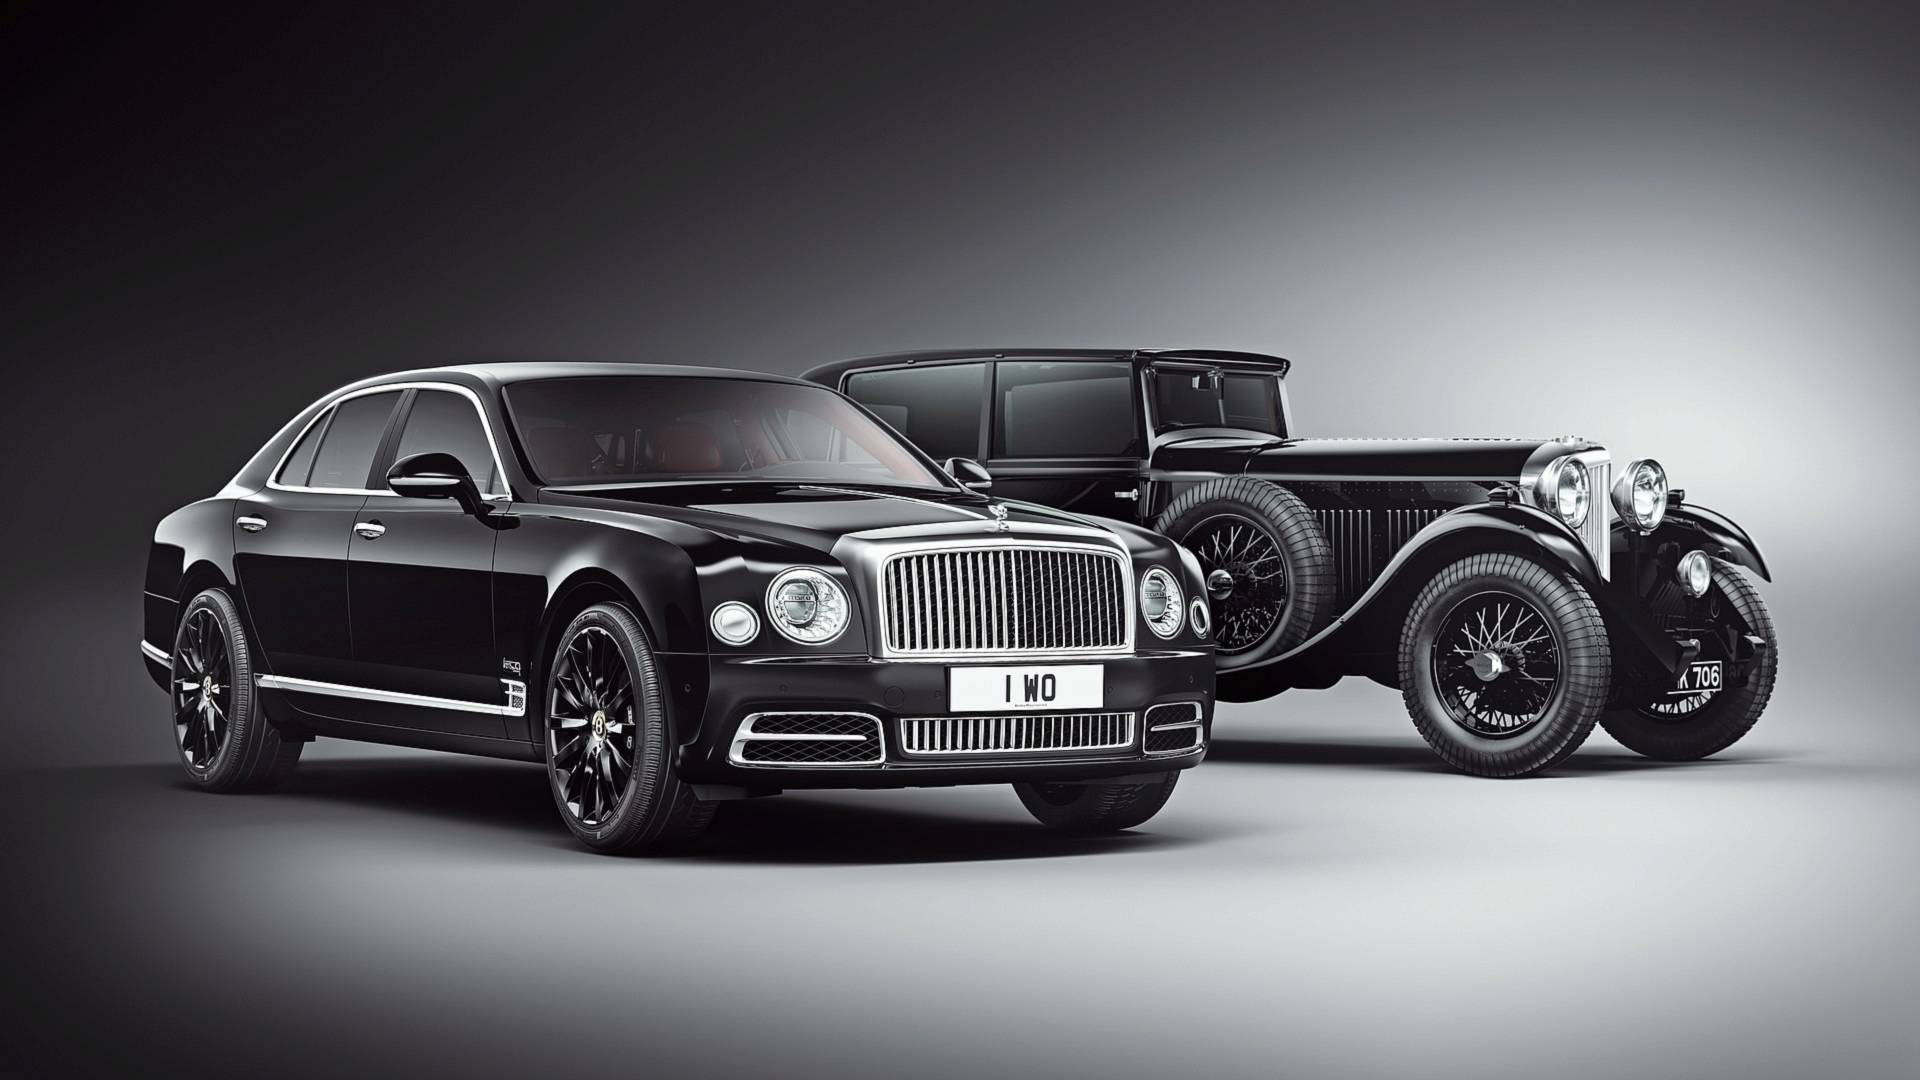 01-bentley-mulsanne-wo-edition.jpg